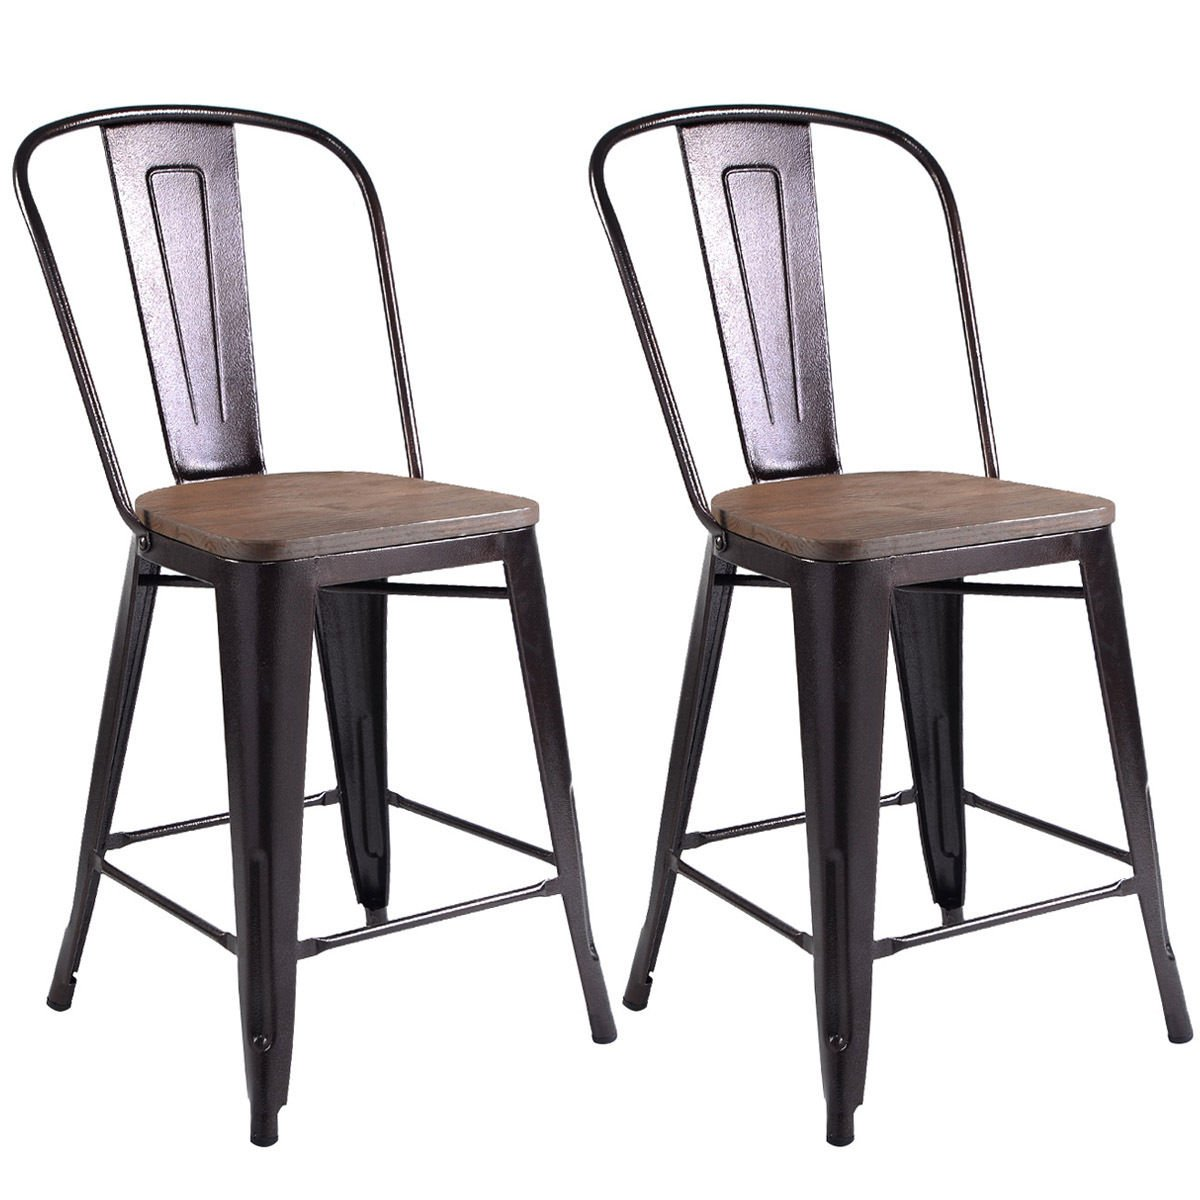 COSTWAY Copper Set of 2 Tolix Style Metal Dining Chairs with Wood Seat Stackable Industrial Counter Stool Cafe Side Chairs HW51454COPPER